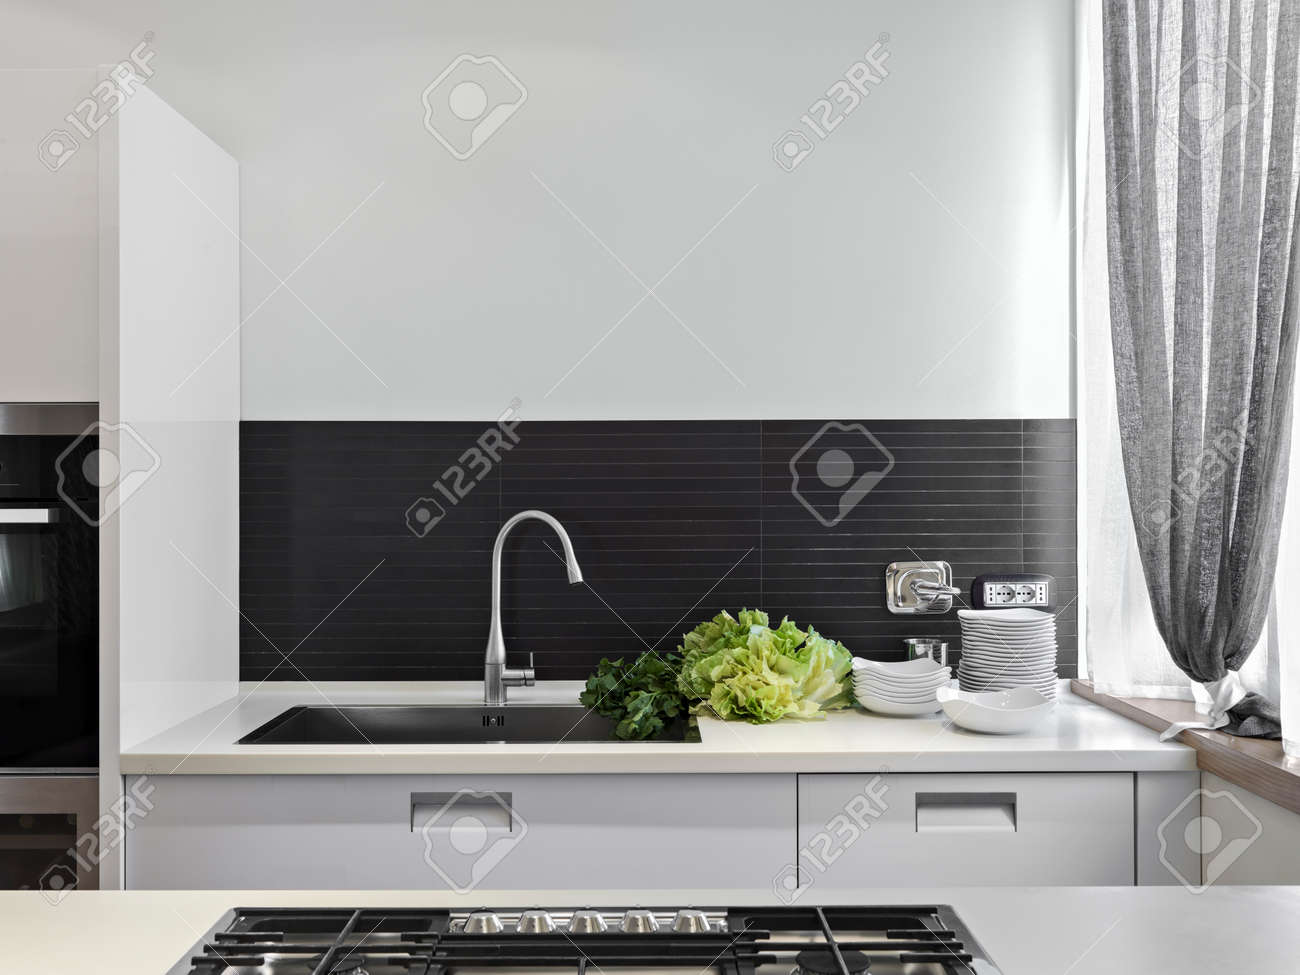 detail of sink with vegetables on the top in the modern kitchen Standard-Bild - 30779318